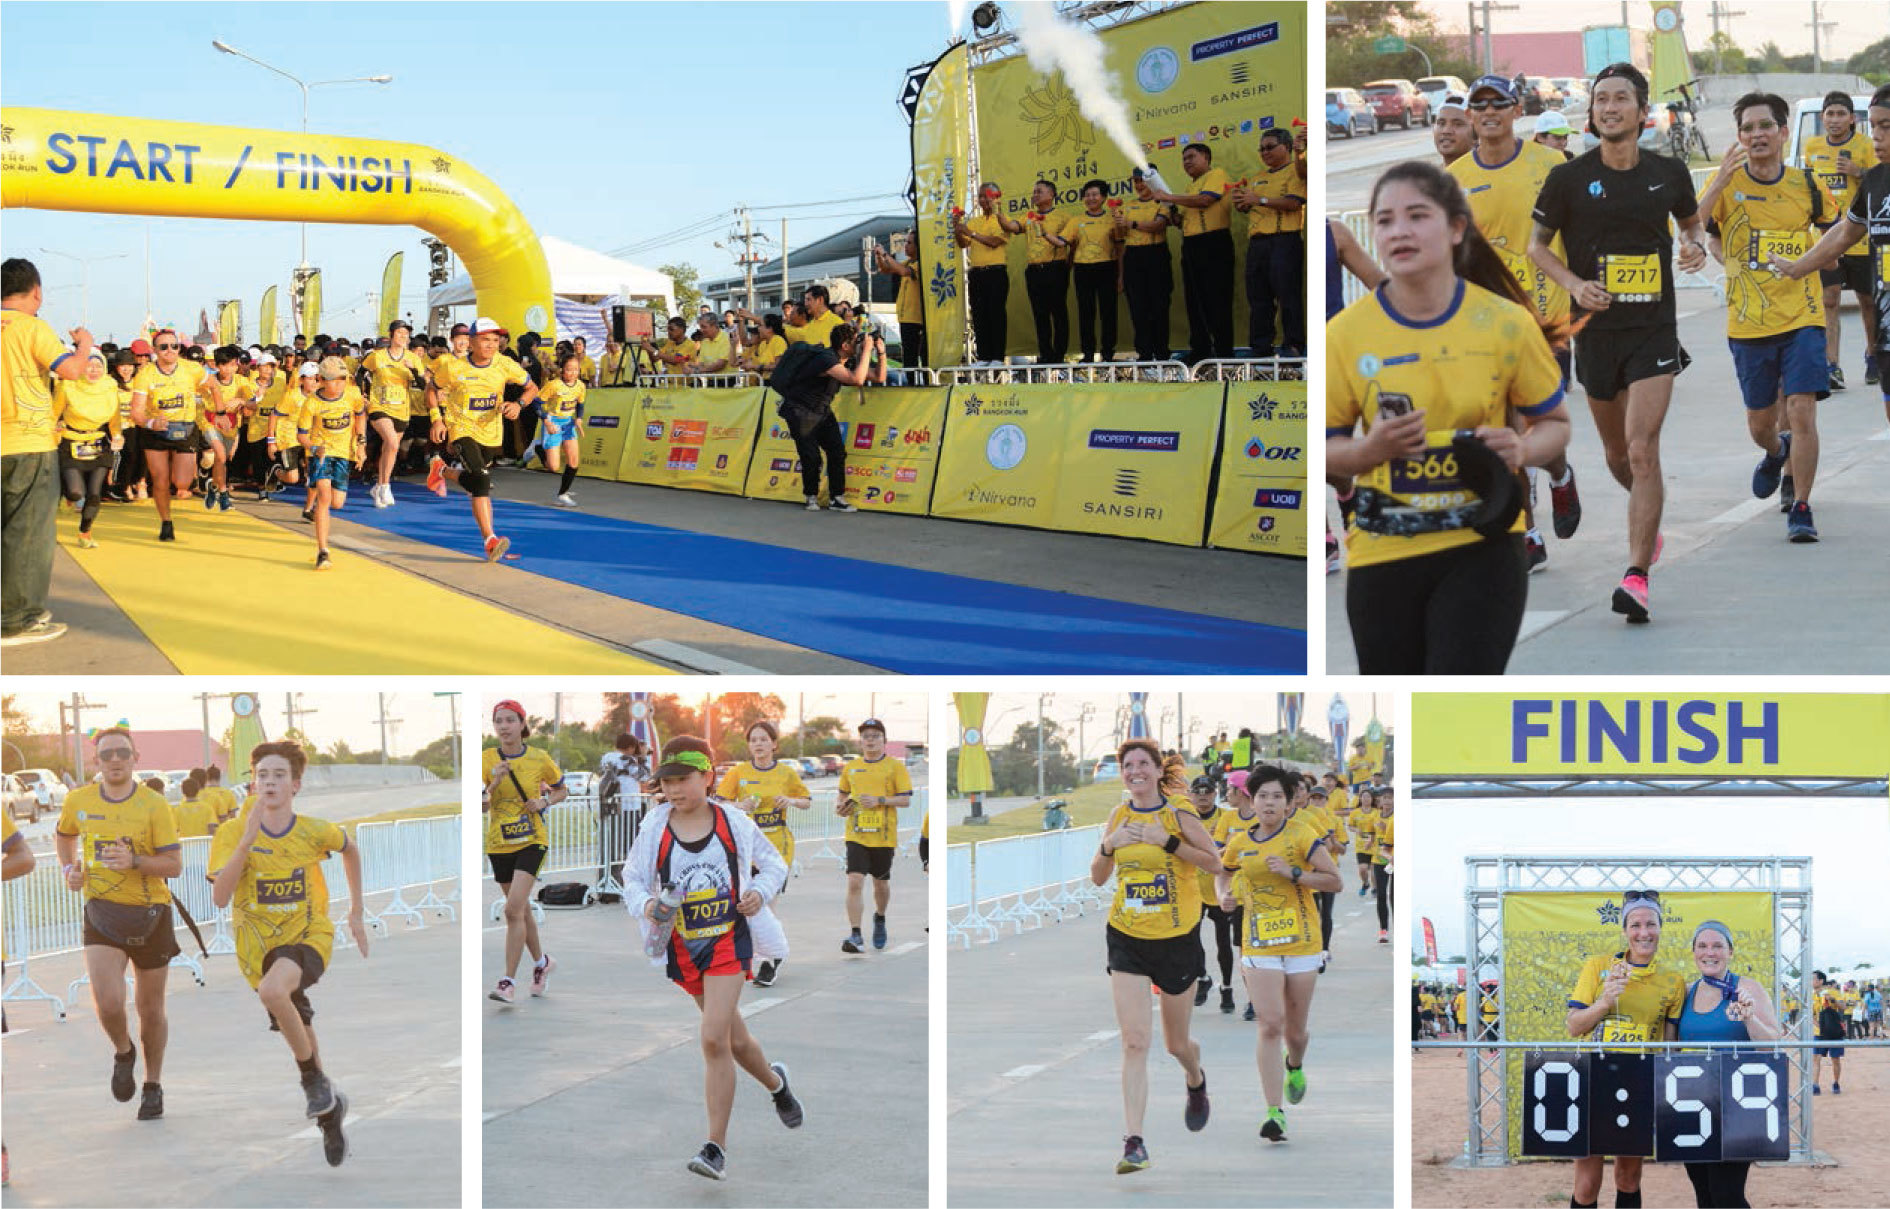 Ruang Phueng Bangkok Run with Toon Bodyslam, Ruamrudee International School Bangkok, Thailand